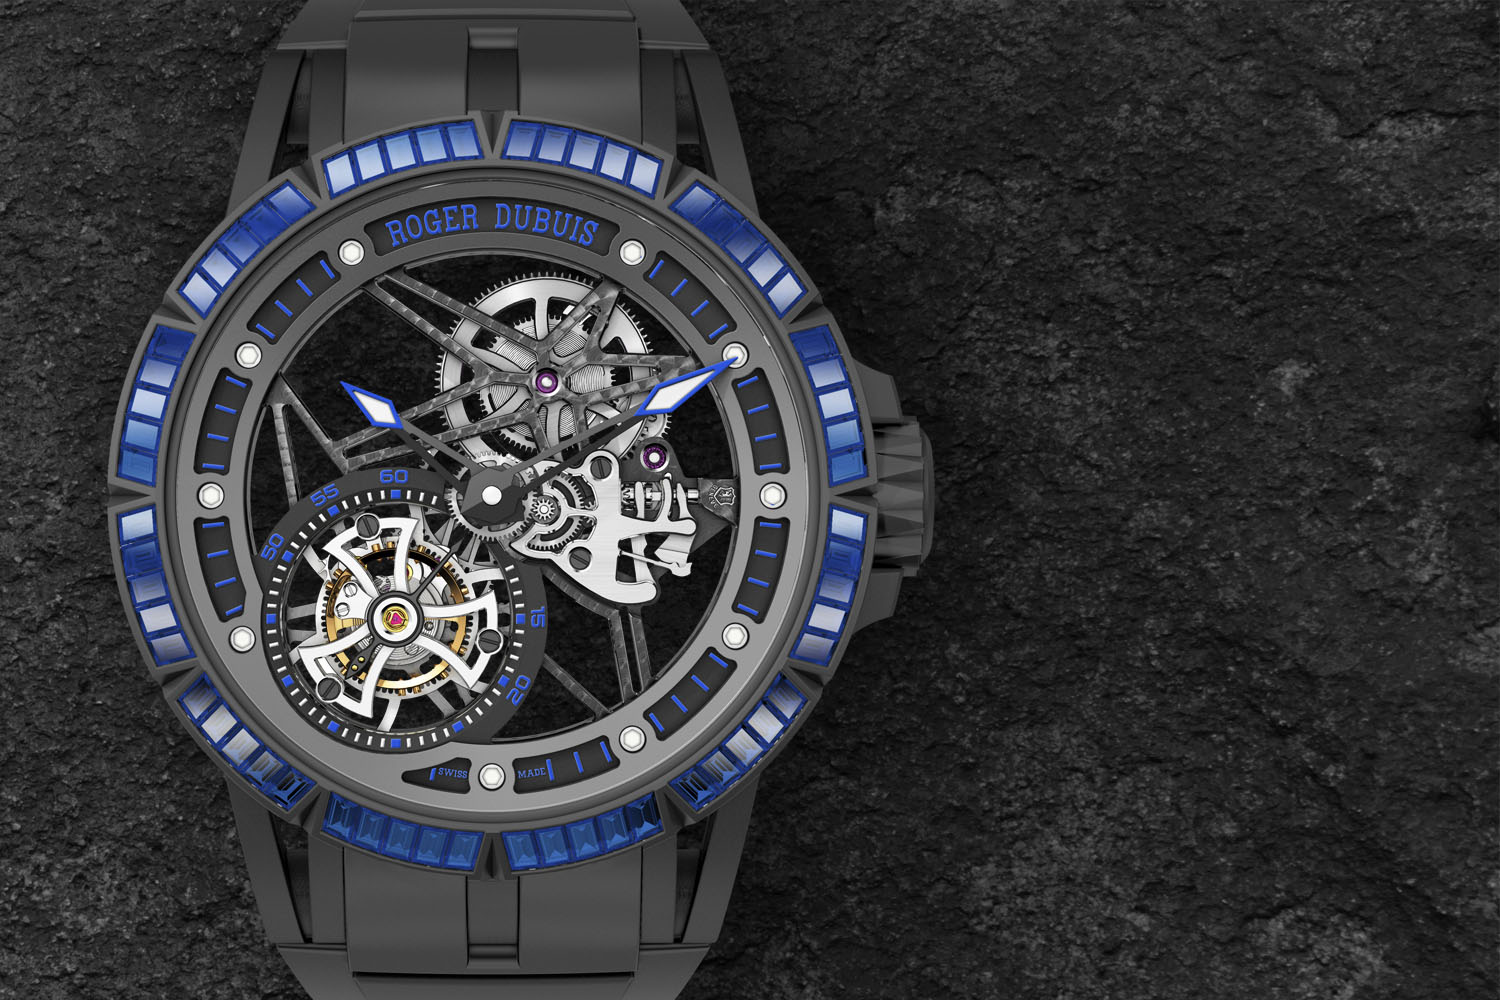 Roger Dubuis Excalibur Spider Skeleton Flying Tourbillon - colored stones rubber bezel